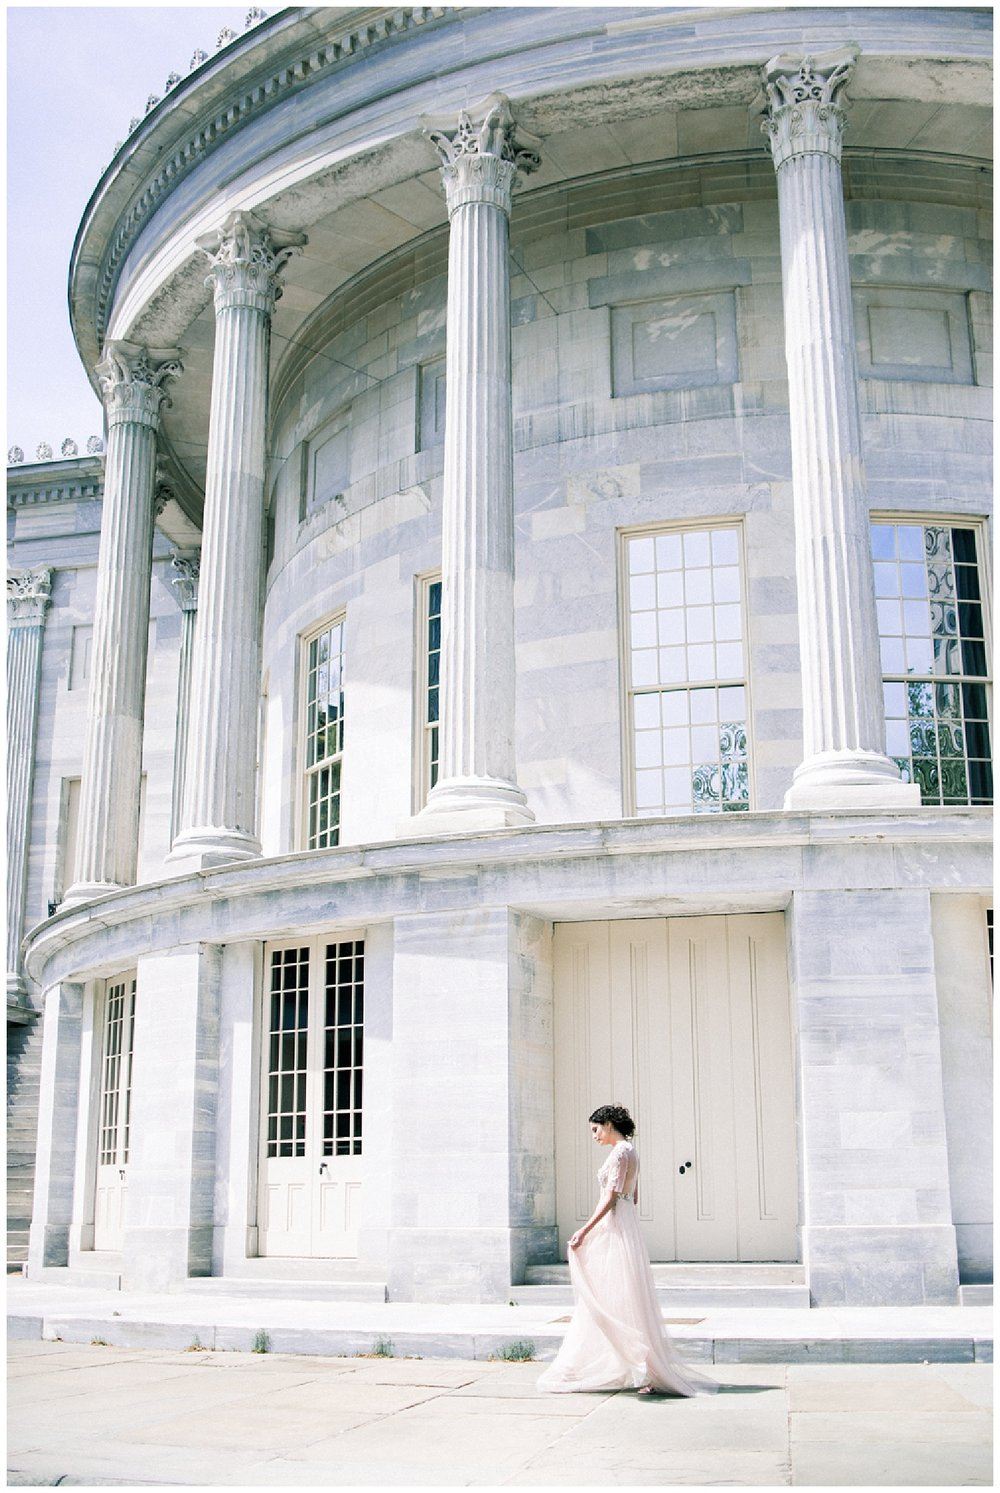 Philadelphia Wedding Inspiration | Merchants' Exchange Building | Philly Weddings | www.redoakweddings.com